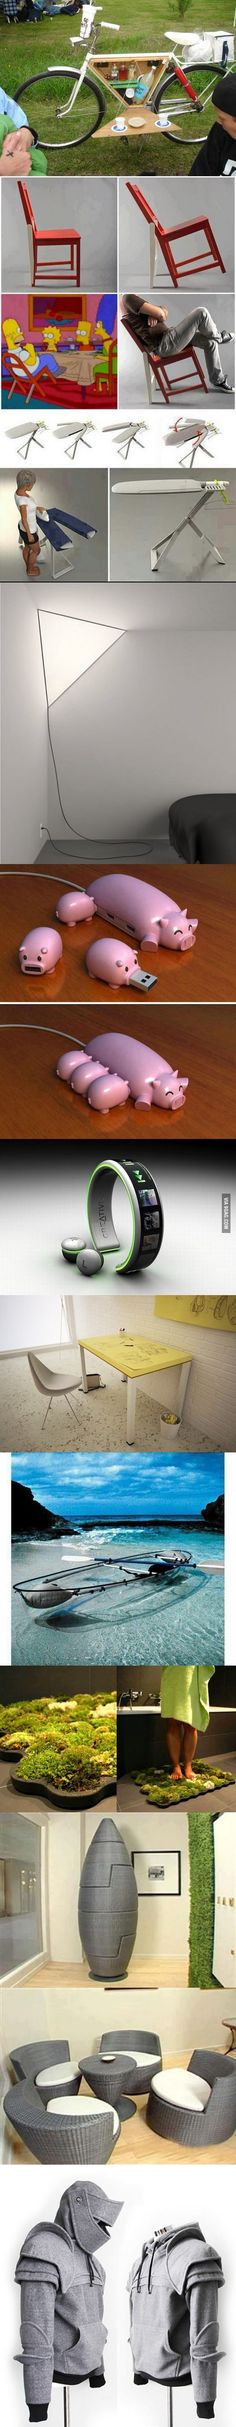 Shut Up And Take My Money inventions Take My Money, Cool Ideas, Objet Wtf, Cool Inventions, Gadgets And Gizmos, Tech Gadgets, Cool Tech, Shut Up, Cool Stuff